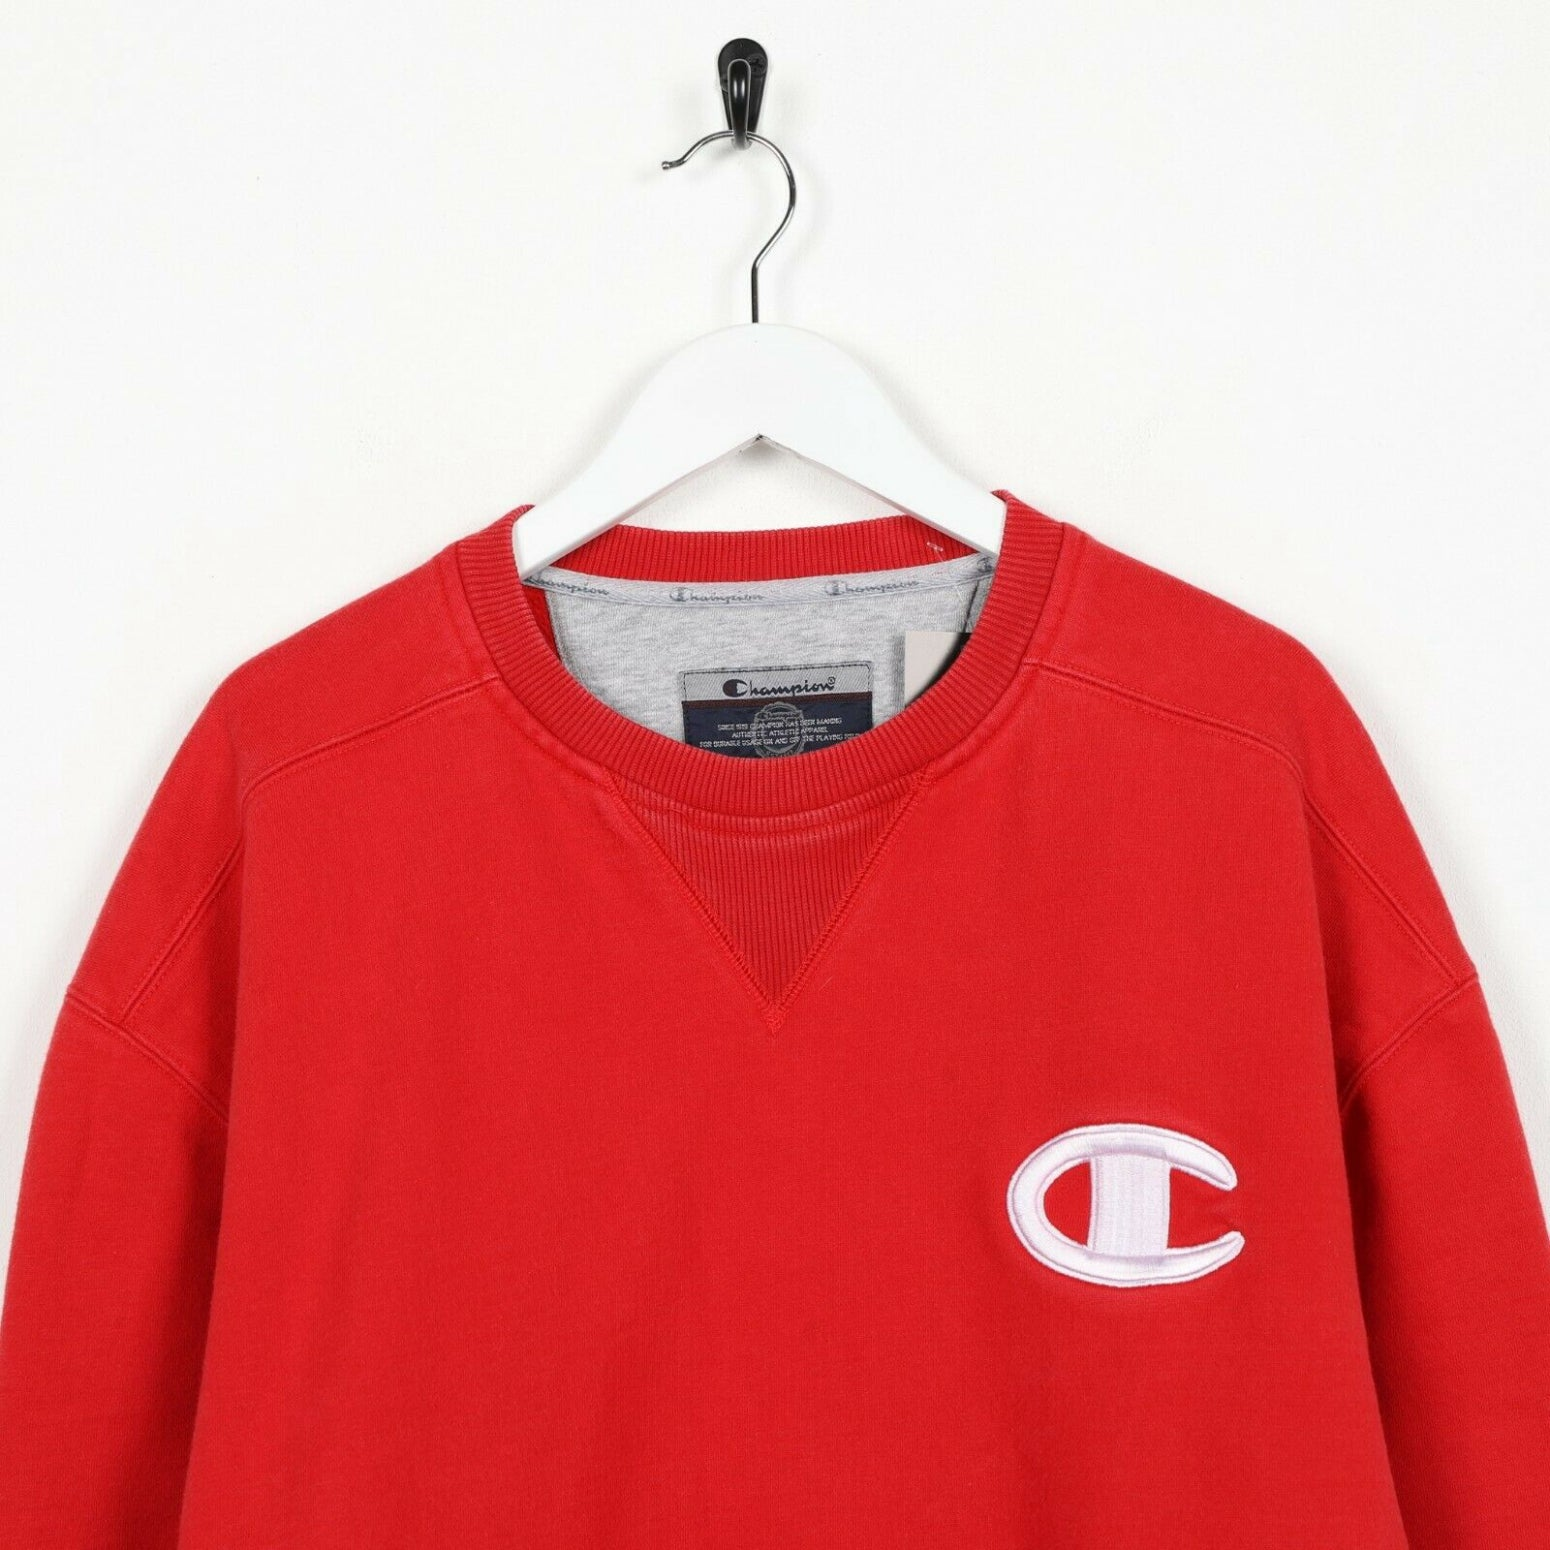 Vintage CHAMPION Small Logo Hoodie Sweatshirt Red Large L